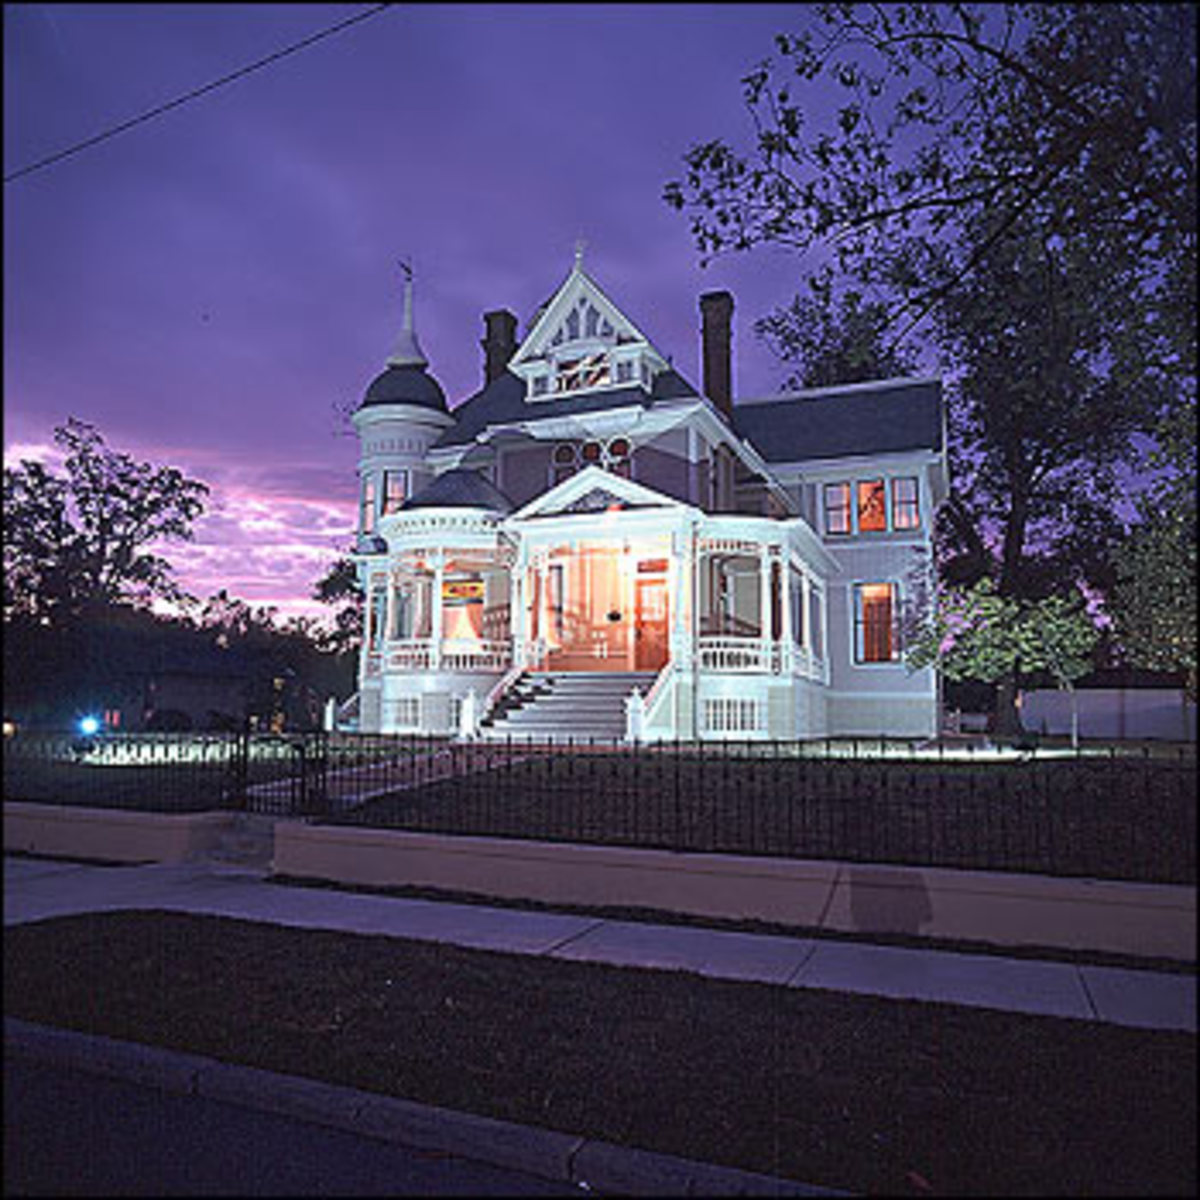 """""""THOMPSON-PILLOW"""" HOUSE IN HELENA, ARKANSAS (QUEEN ANNE ARCHITECTURE)"""